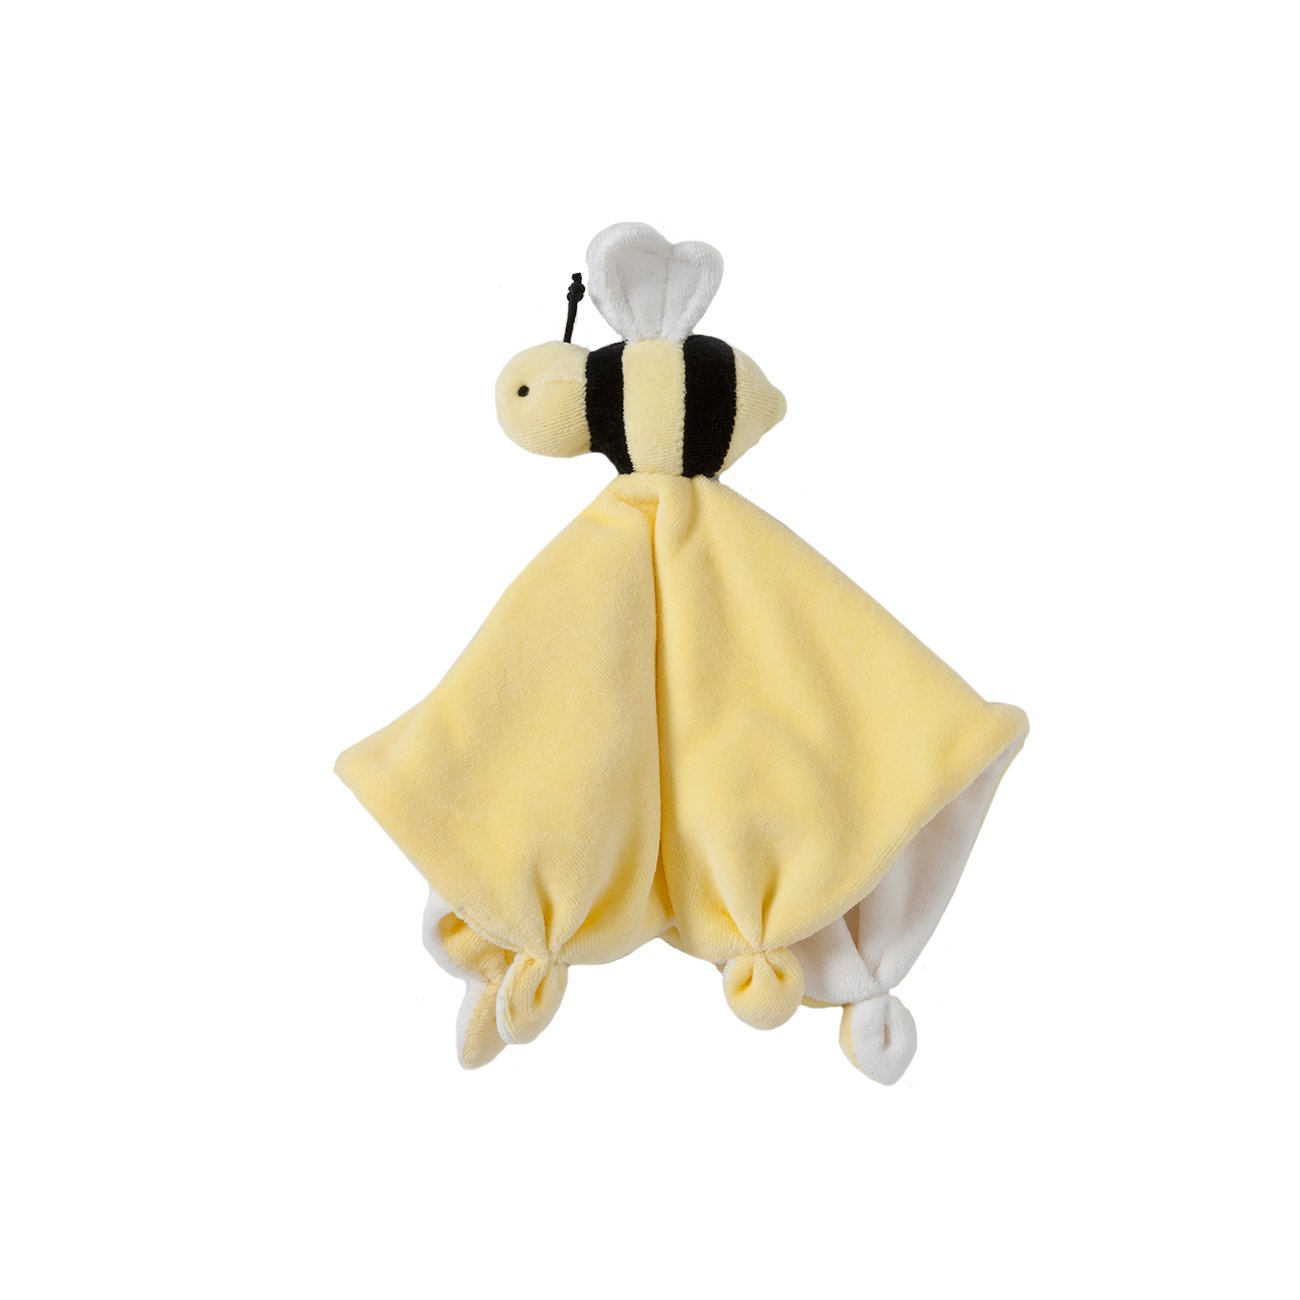 Burt's Bees Baby - Lovey Plush, Hold Me Bee Soother Security Blanket, 100% Organic Cotton (Sunshine Yellow) by Burt's Bees Baby